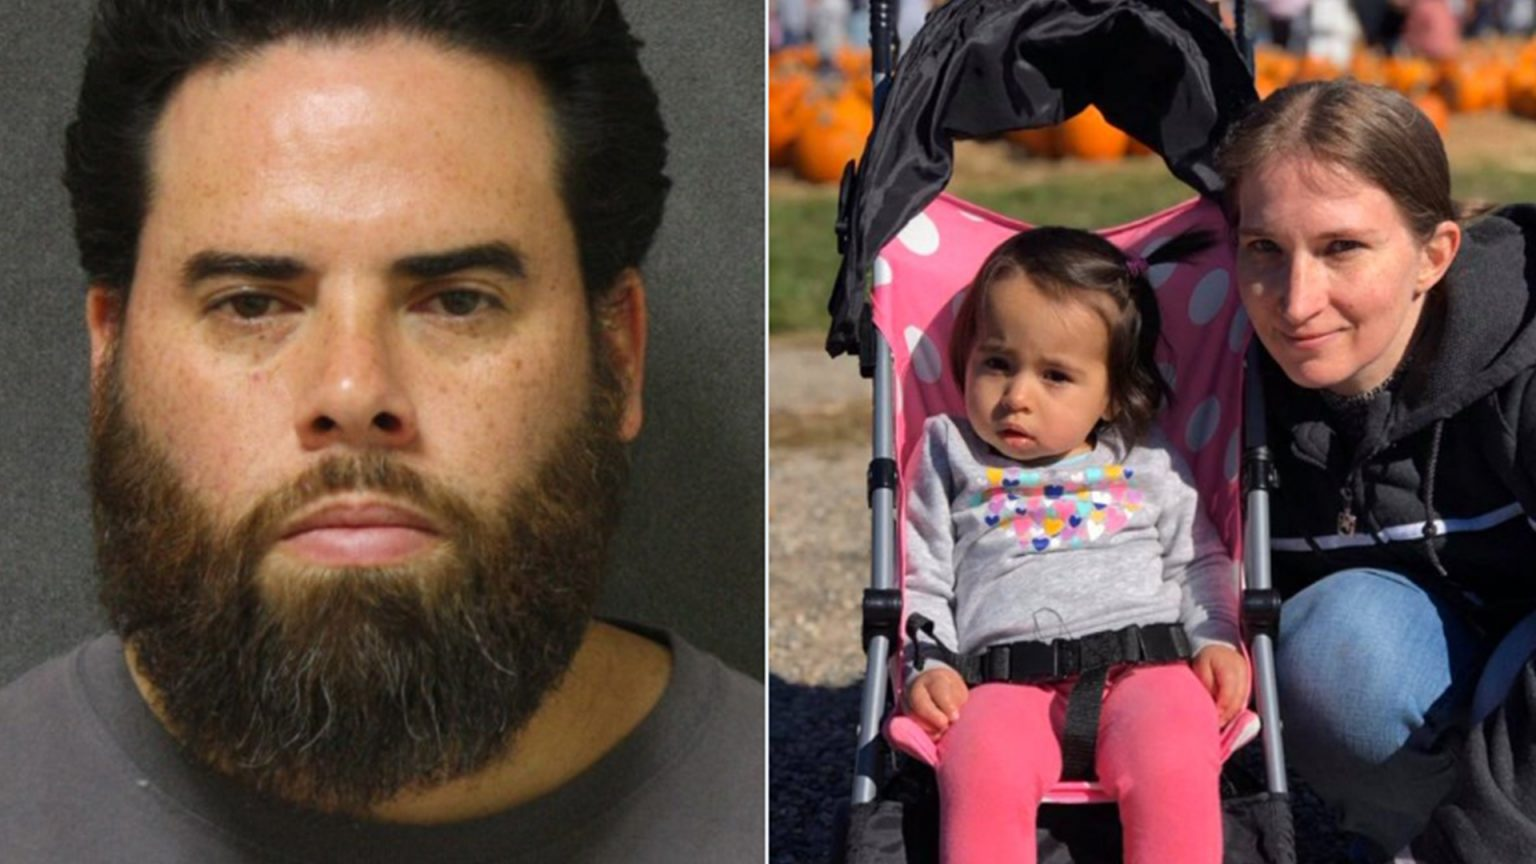 Amber Alert over missing toddler. Now the felon father is charged with murdering the mom.